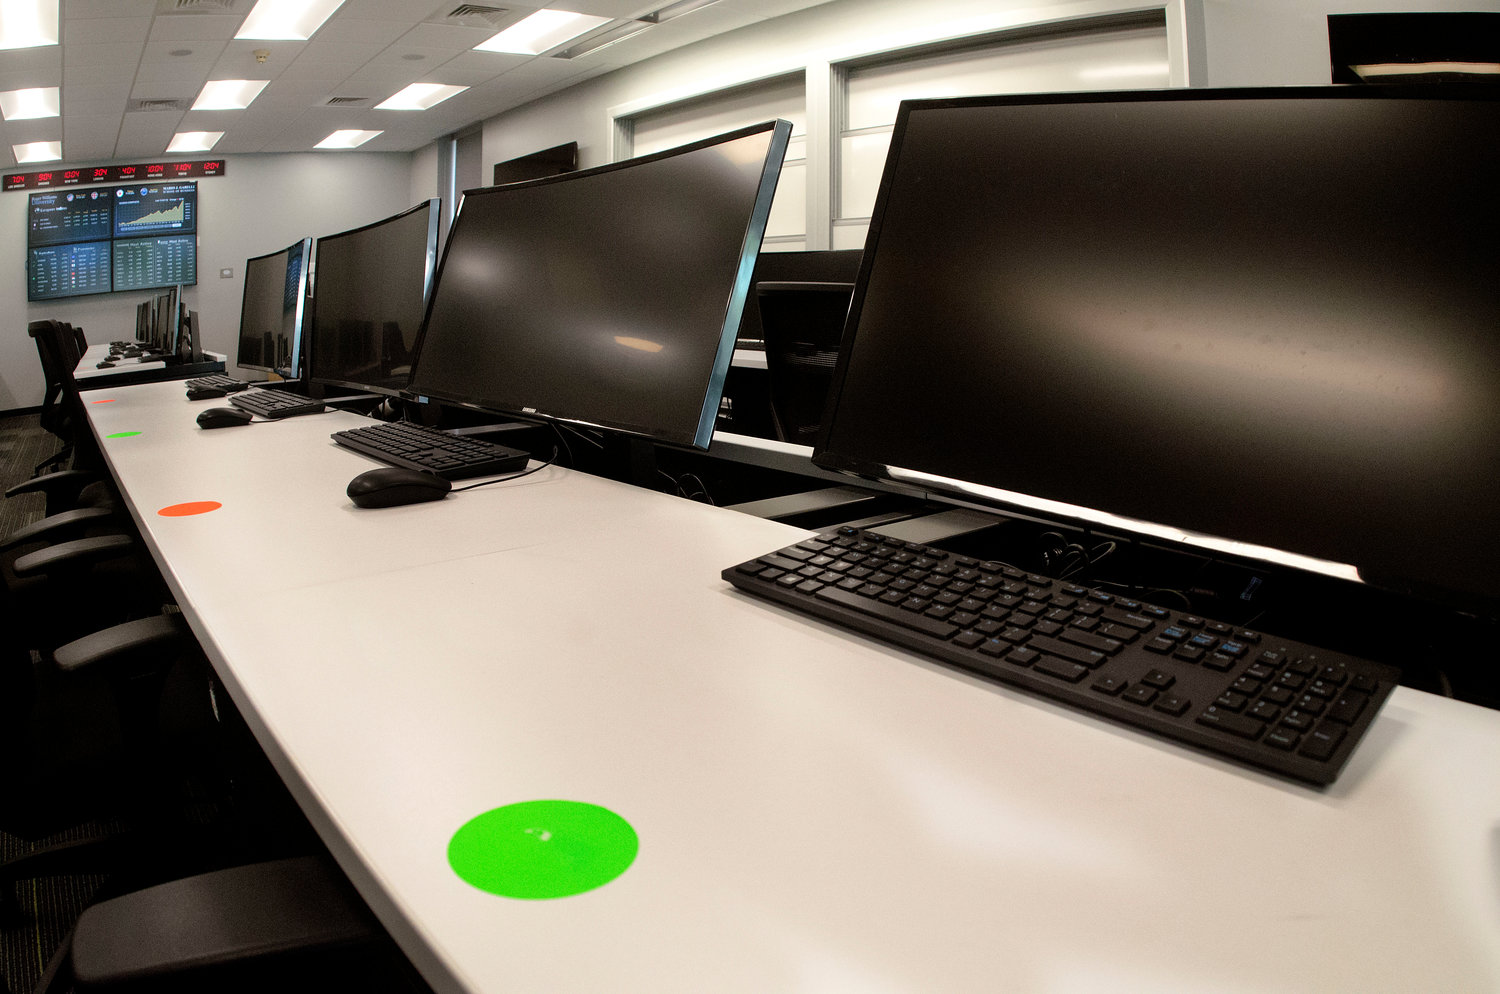 A classroom in the Gabelli School of Business building uses green dots to identify where a student may sit, and red dots or no dots to identify where a student cannot sit during class.